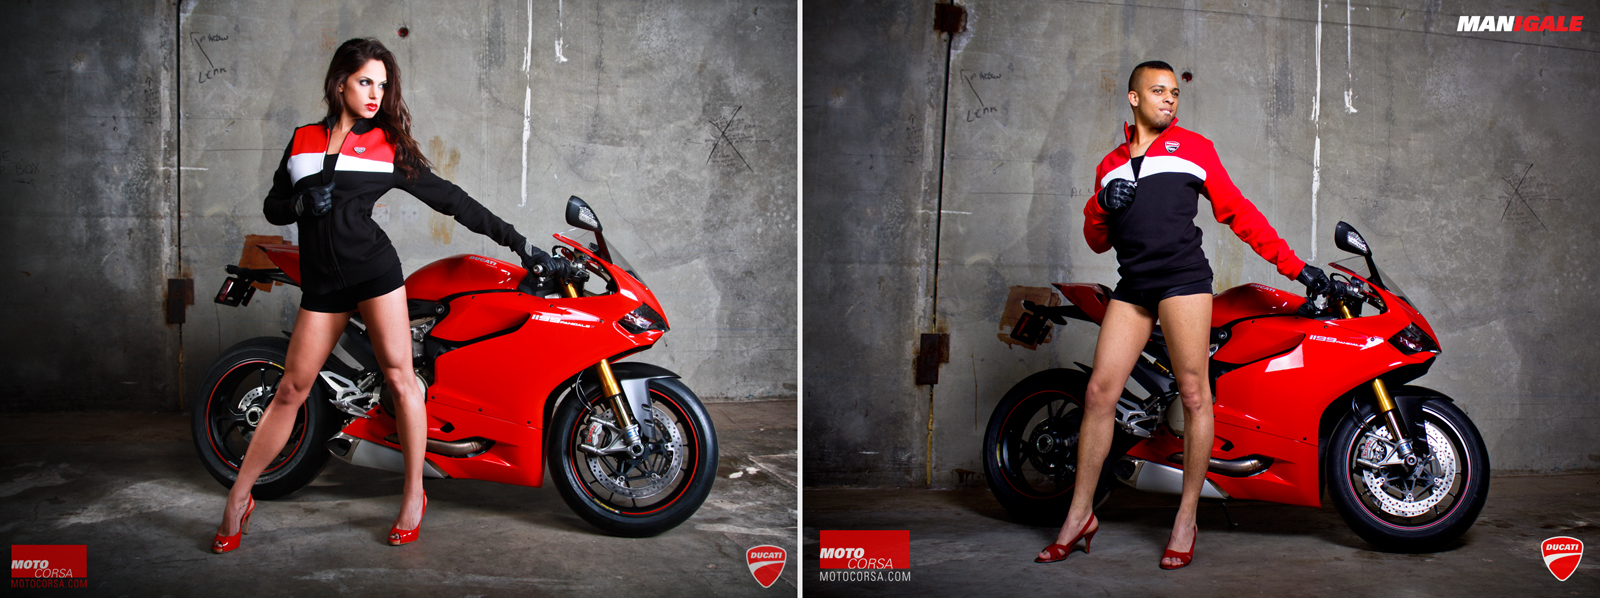 manigale-ducati-1199-wallpaper-17-comp